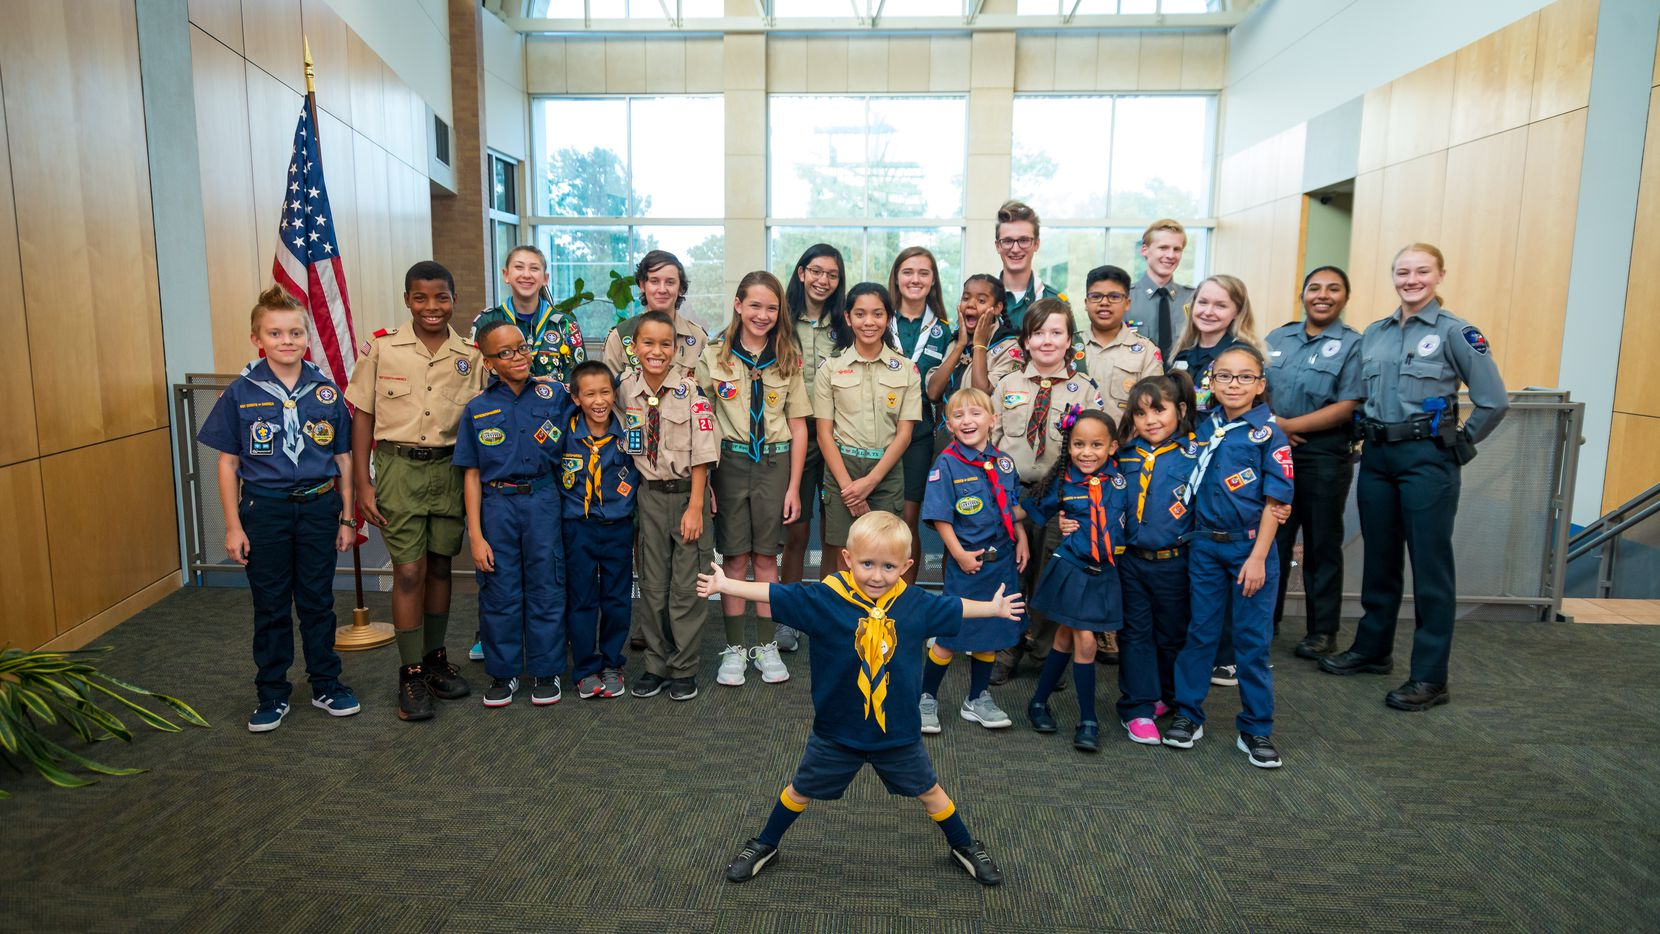 A group of Scouts across a range of ages pose for a photo together.